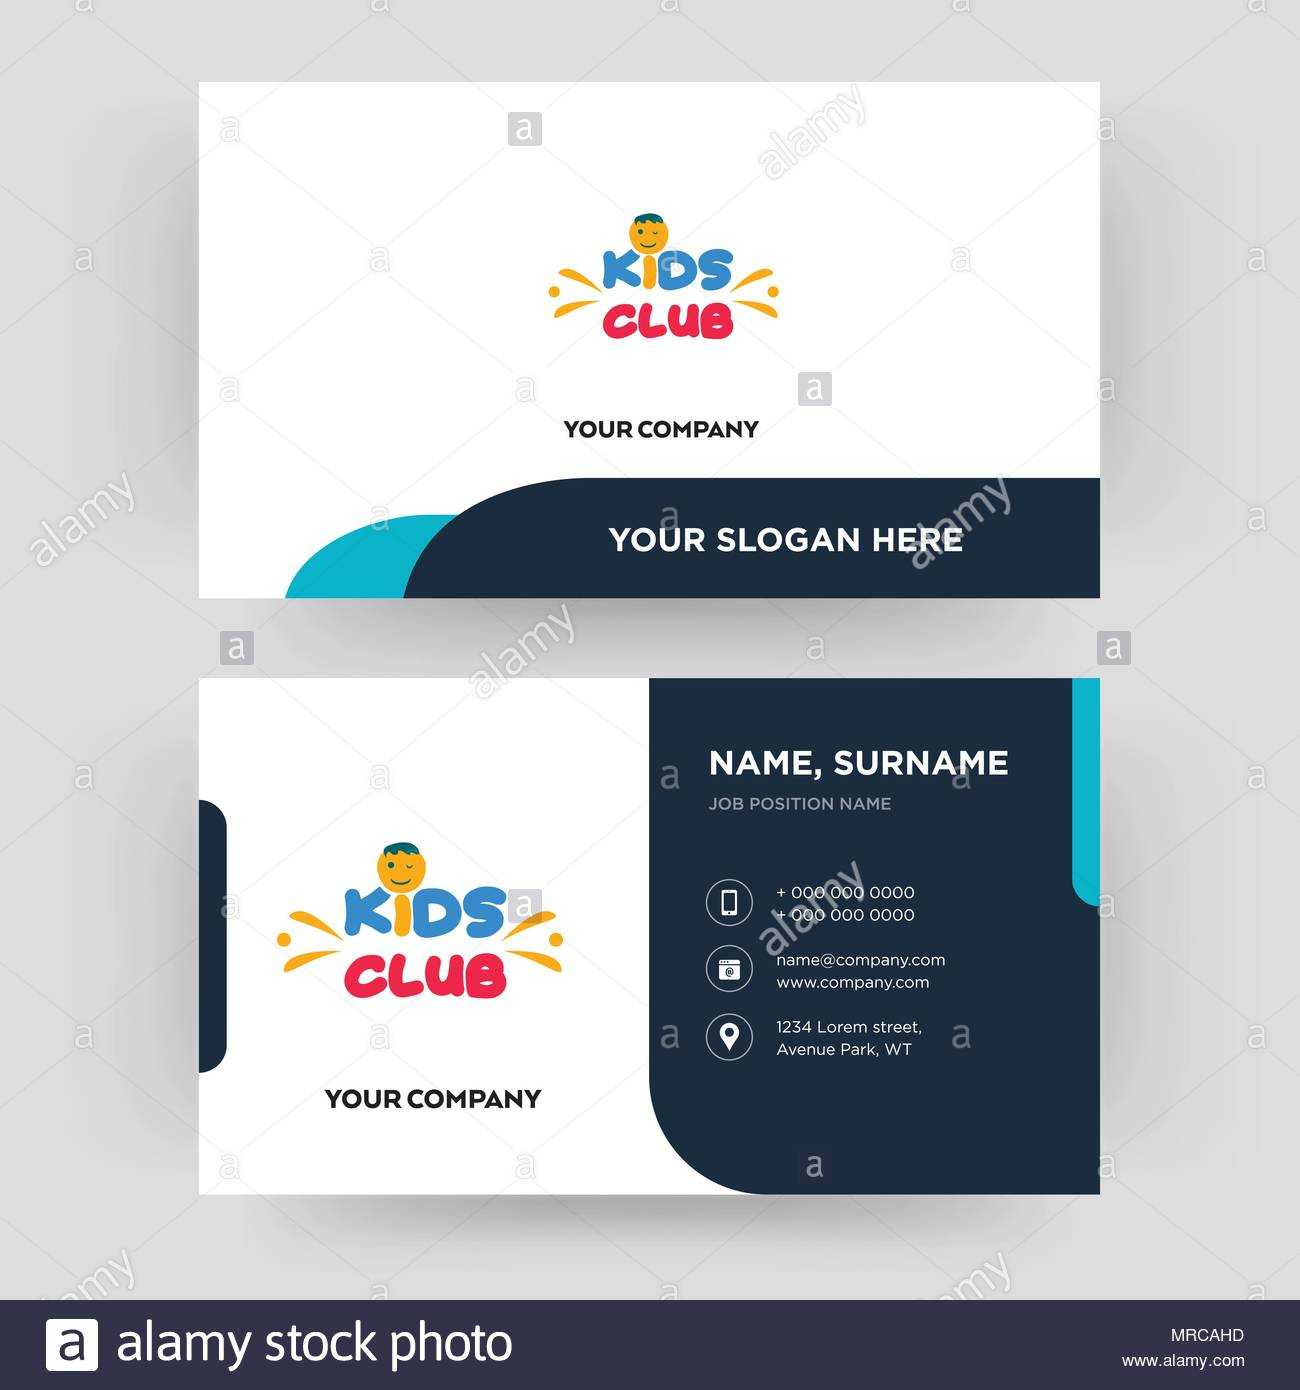 Kids Club, Business Card Design Template, Visiting For Your Throughout Id Card Template For Kids